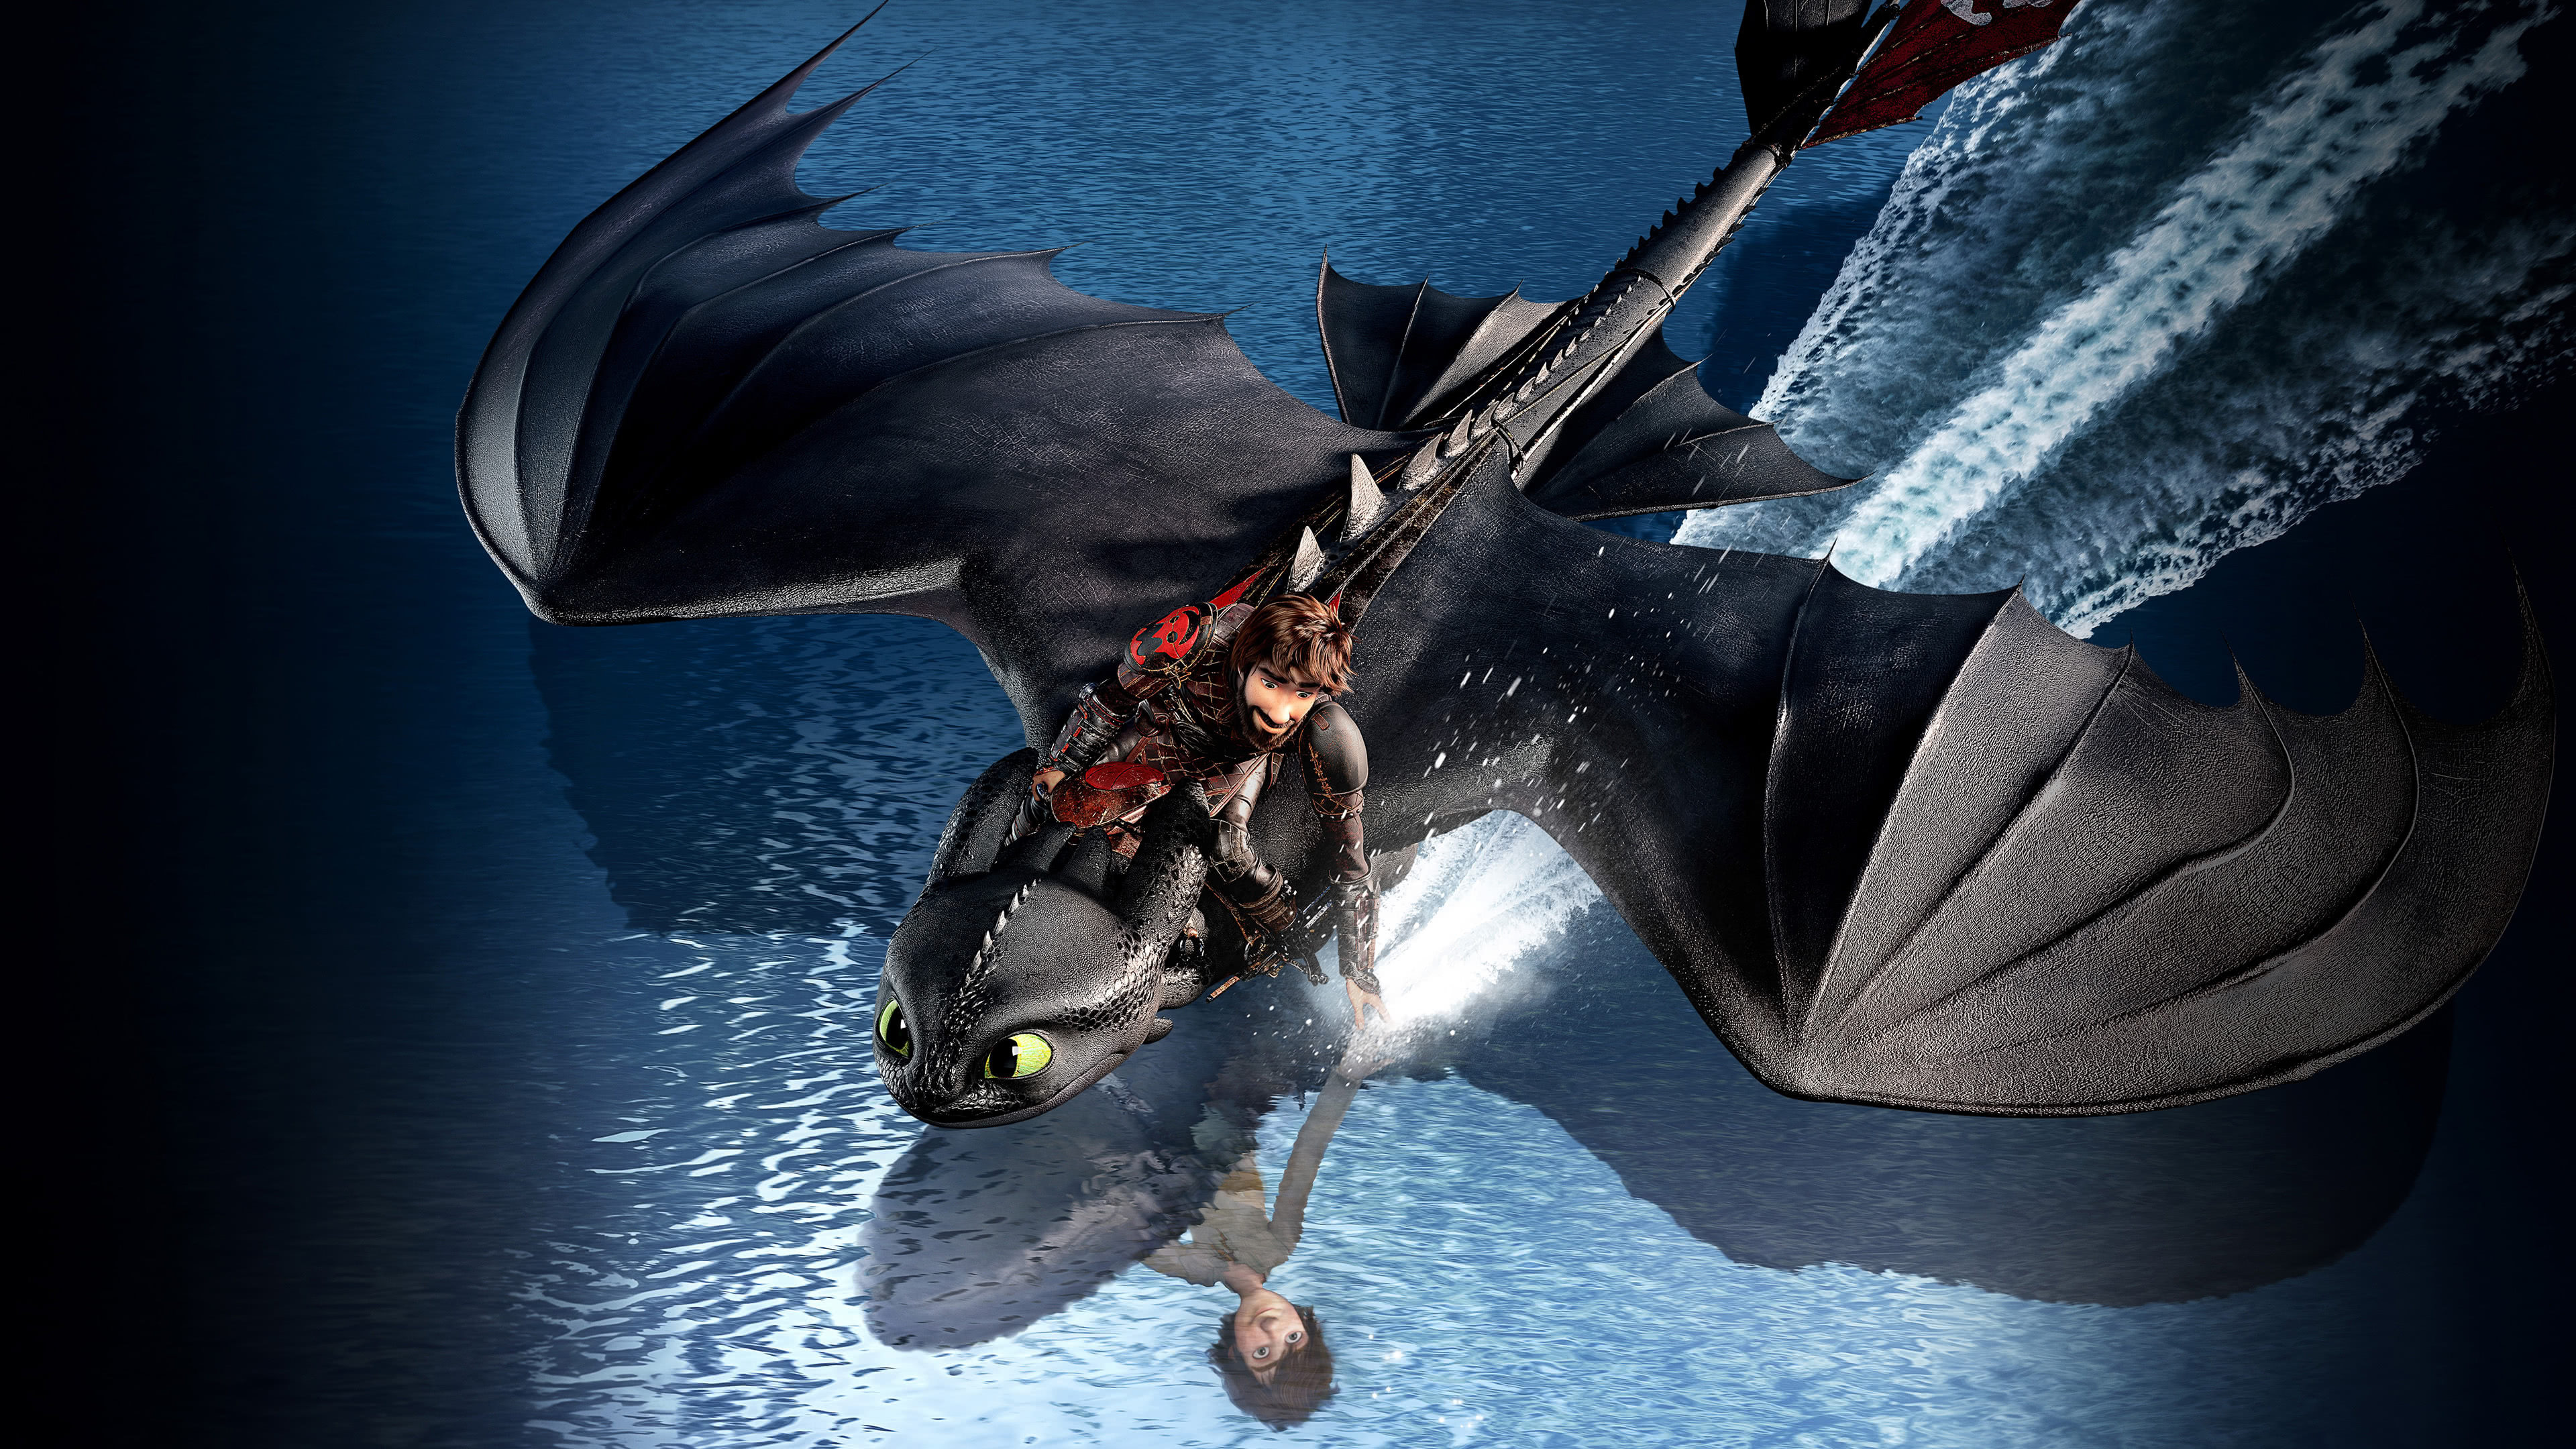 How To Train Your Dragon The Hidden World Uhd 4k Wallpaper Pixelz